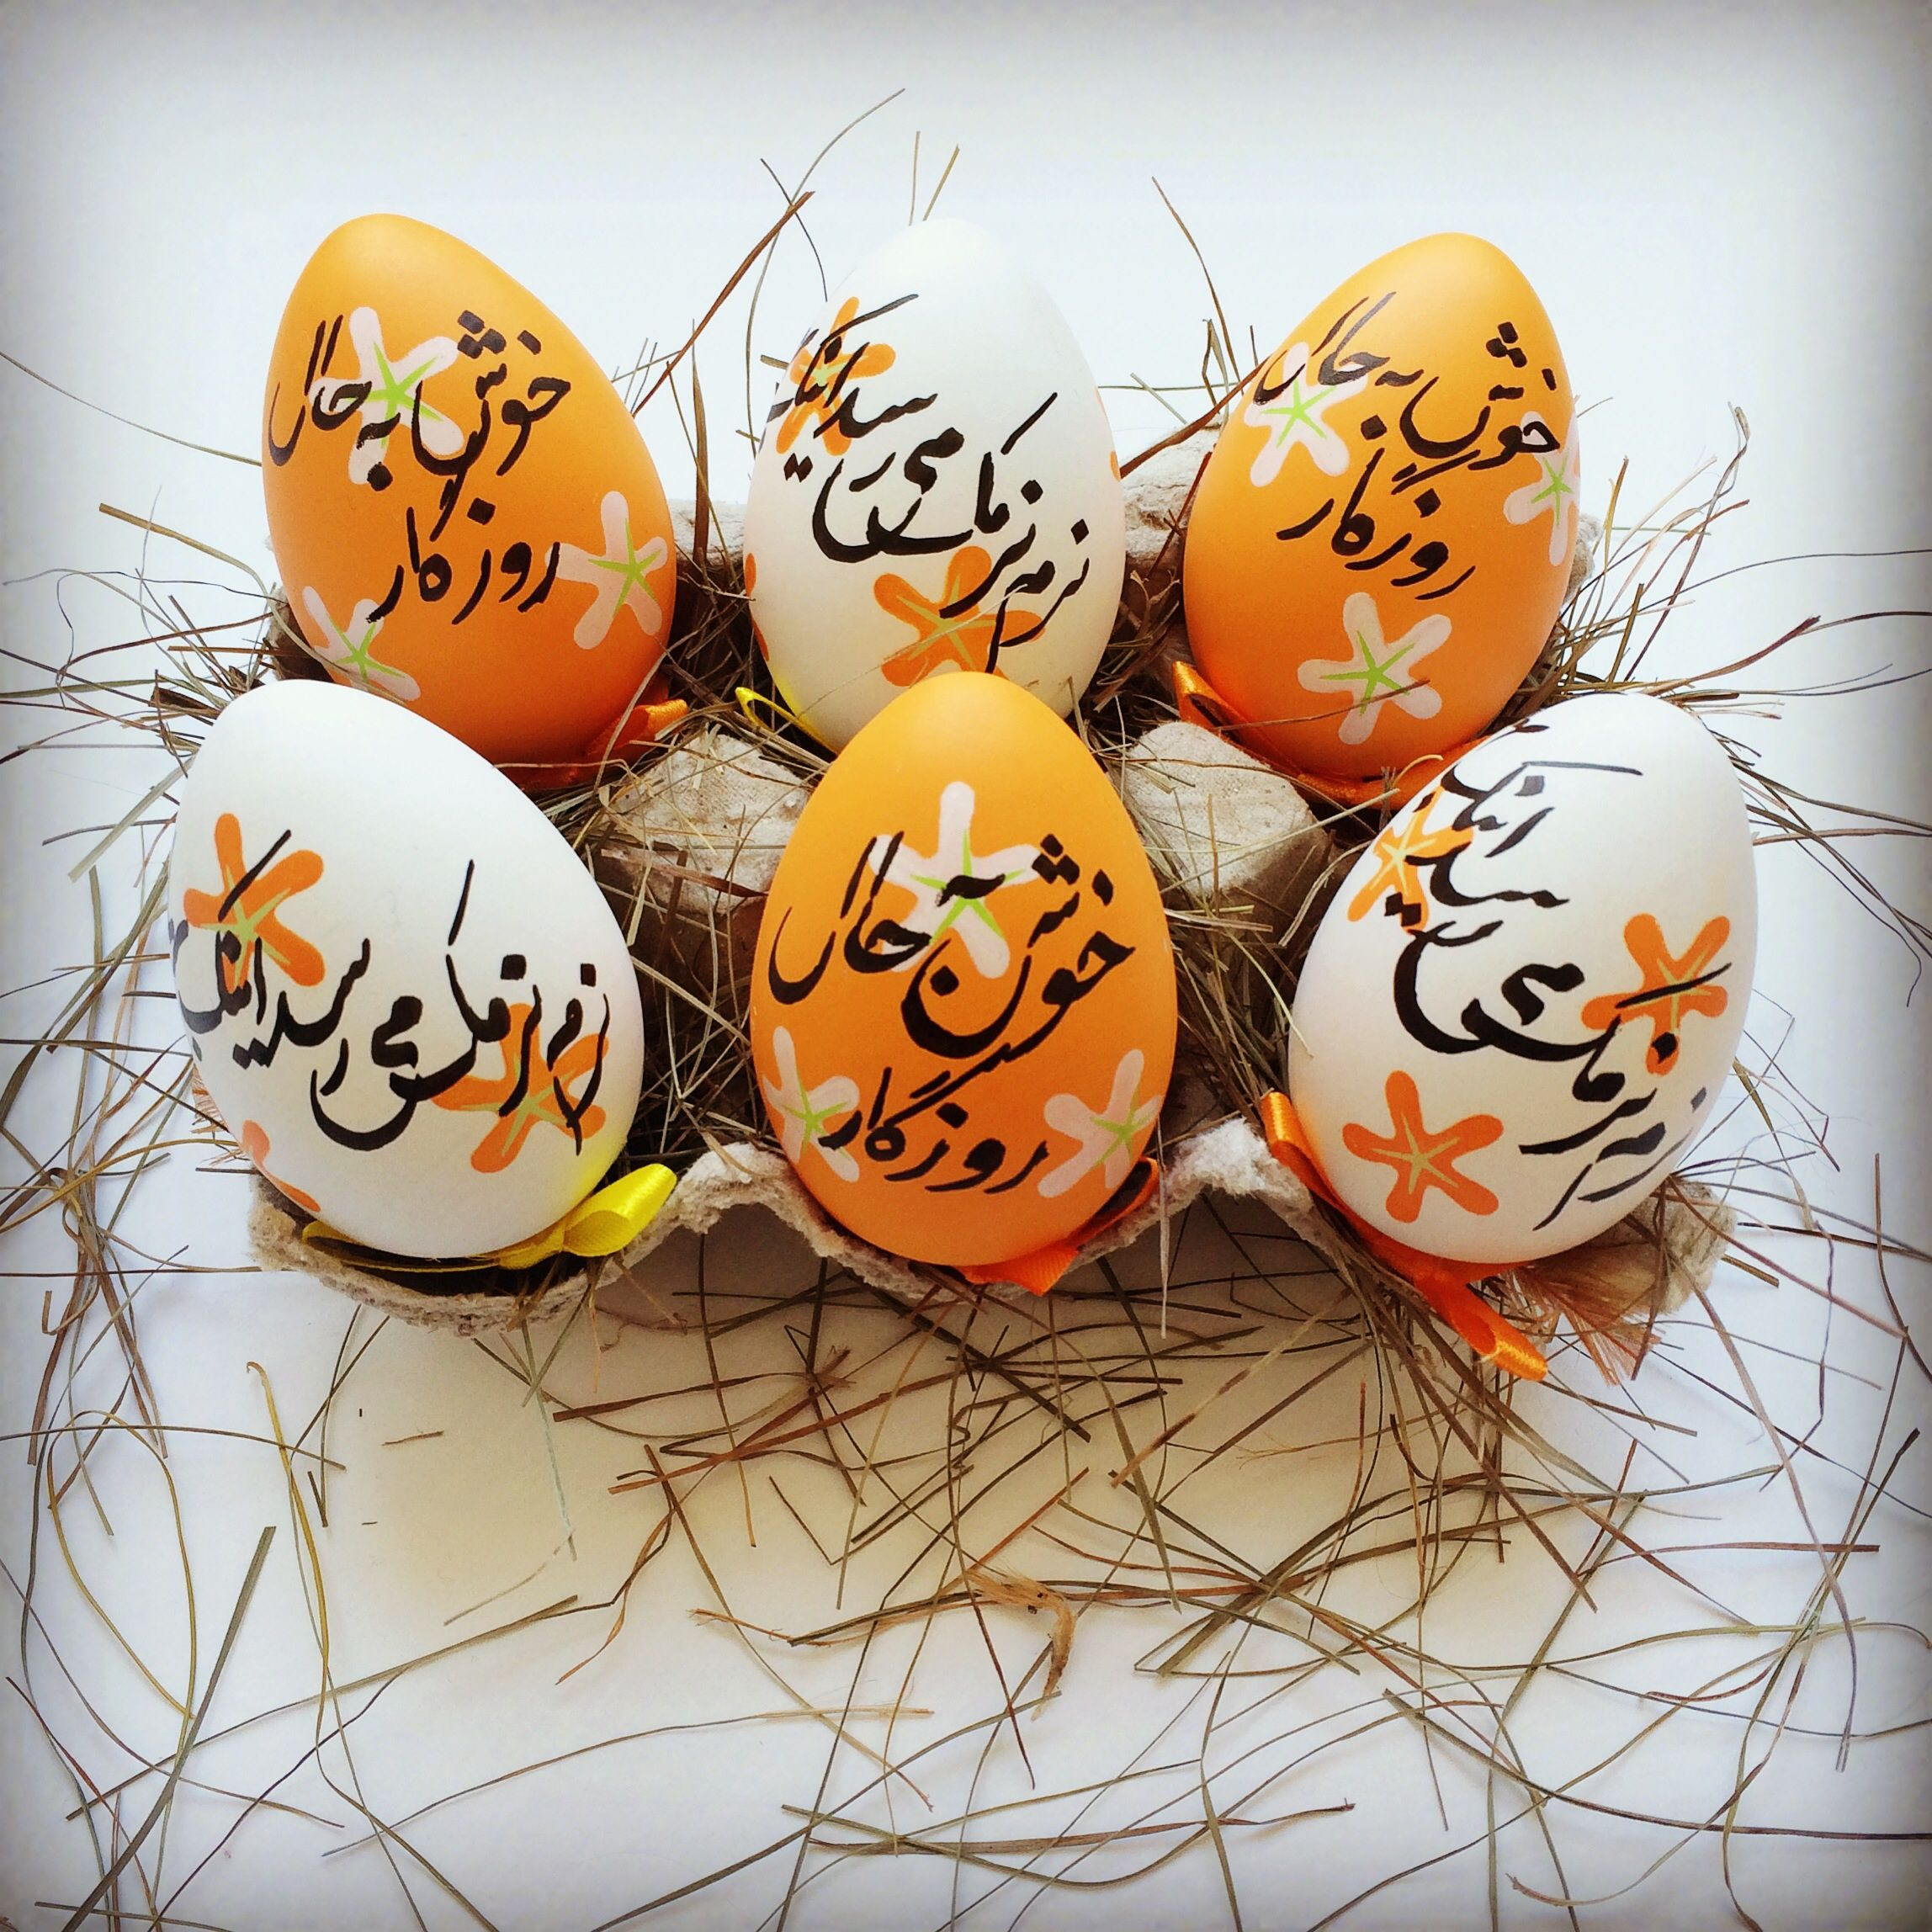 Alangoo norouz handmade spring is coming slowly on haftseen egg alangoo norouz handmade spring is coming slowly on haftseen egg nowruz persian new year kristyandbryce Gallery